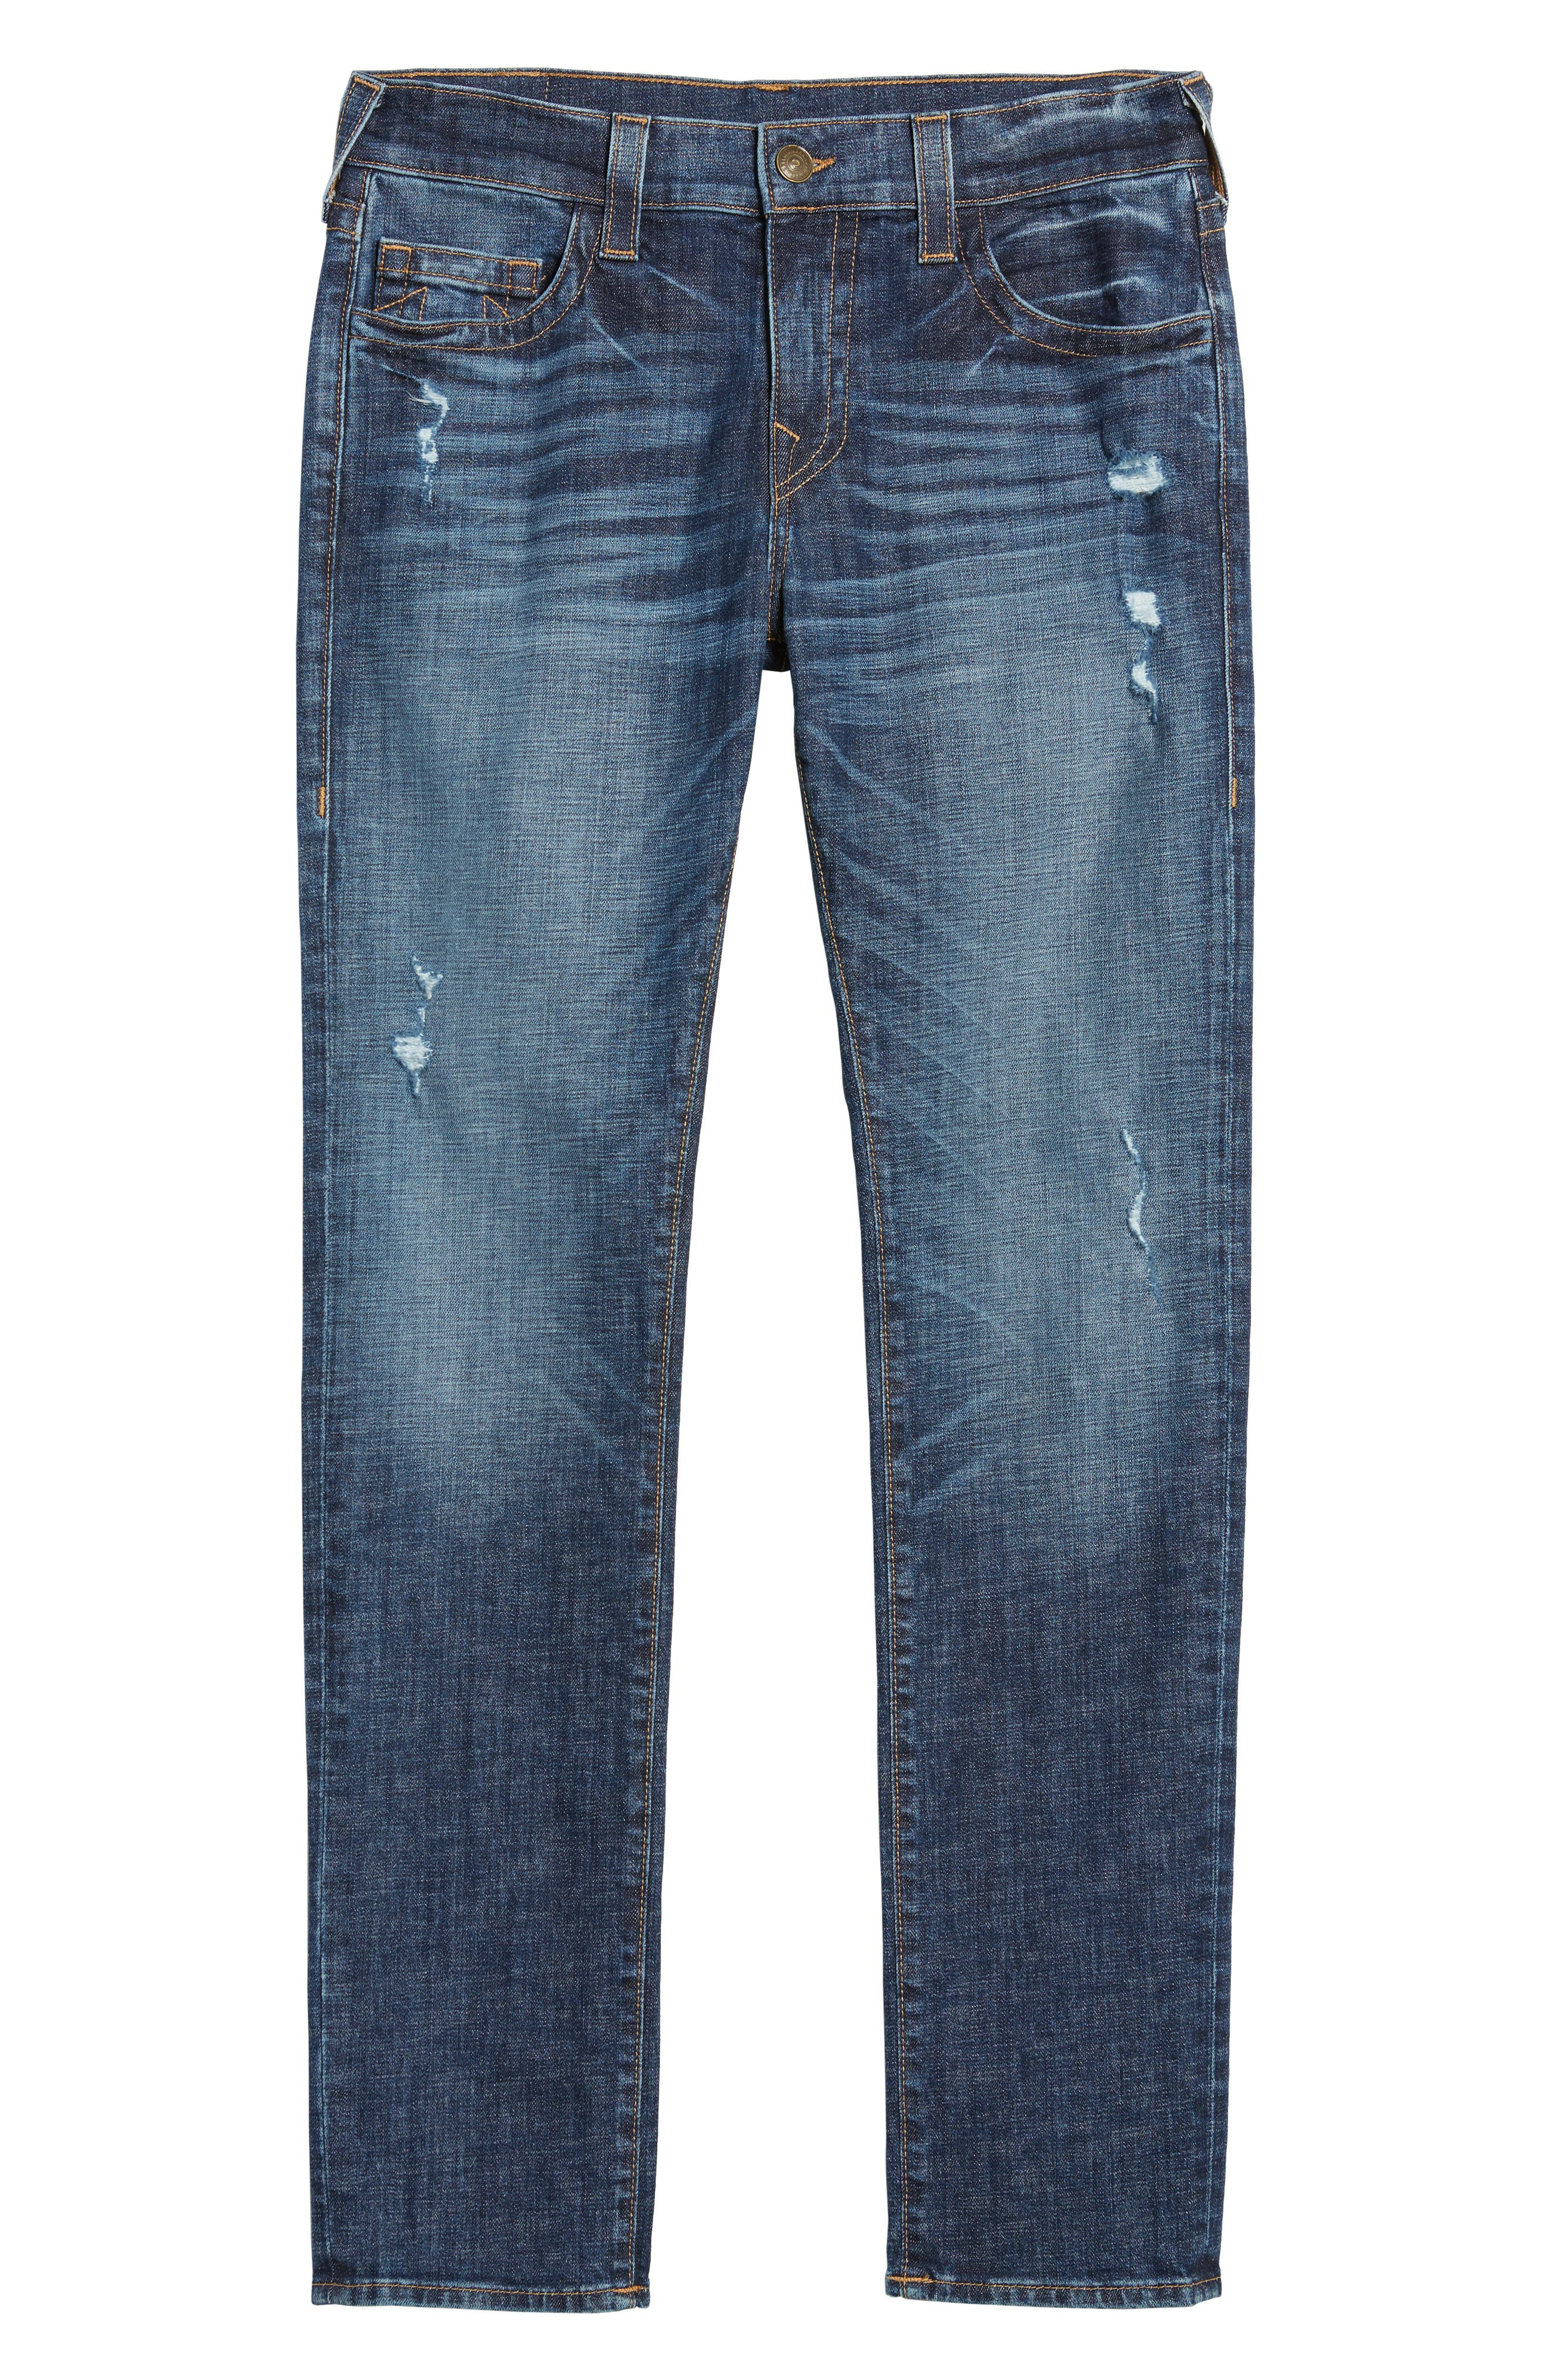 Rocco Skinny Fit Jeans,                             Alternate thumbnail 6, color,                             400